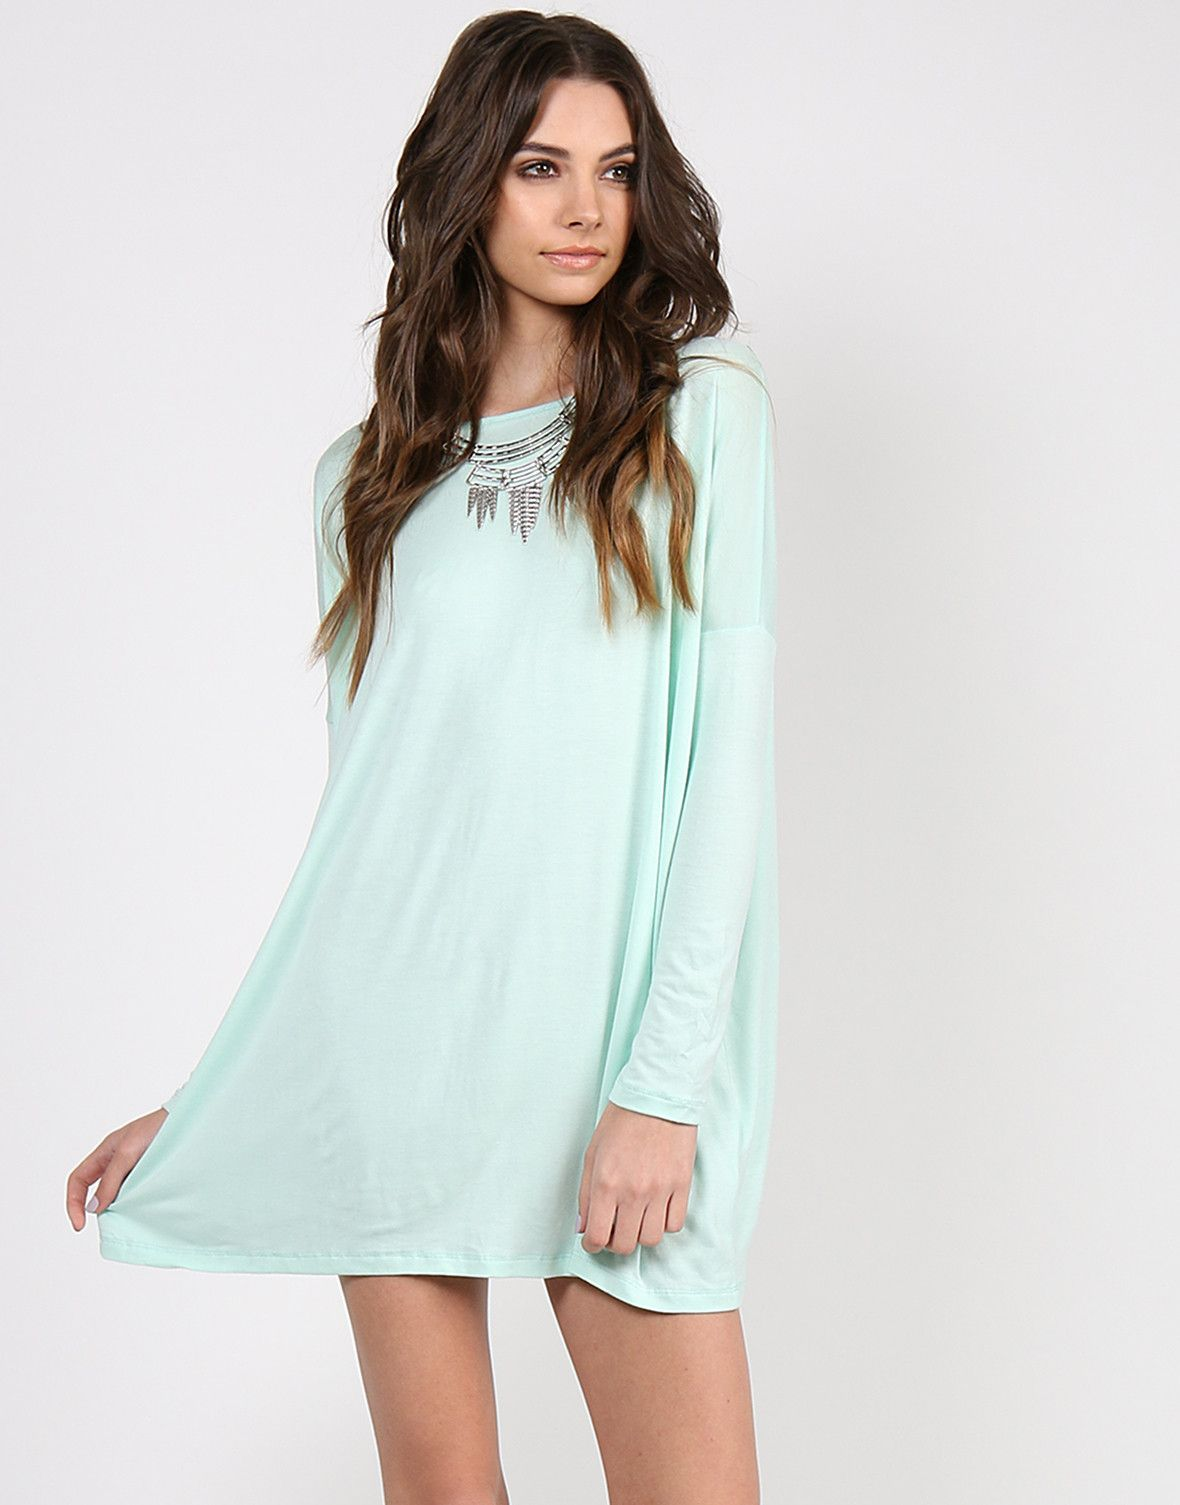 4b9ca7080 Long Sleeve Shirt Dress - Mint from 2020AVE #mint #shirtdress #longsleeve